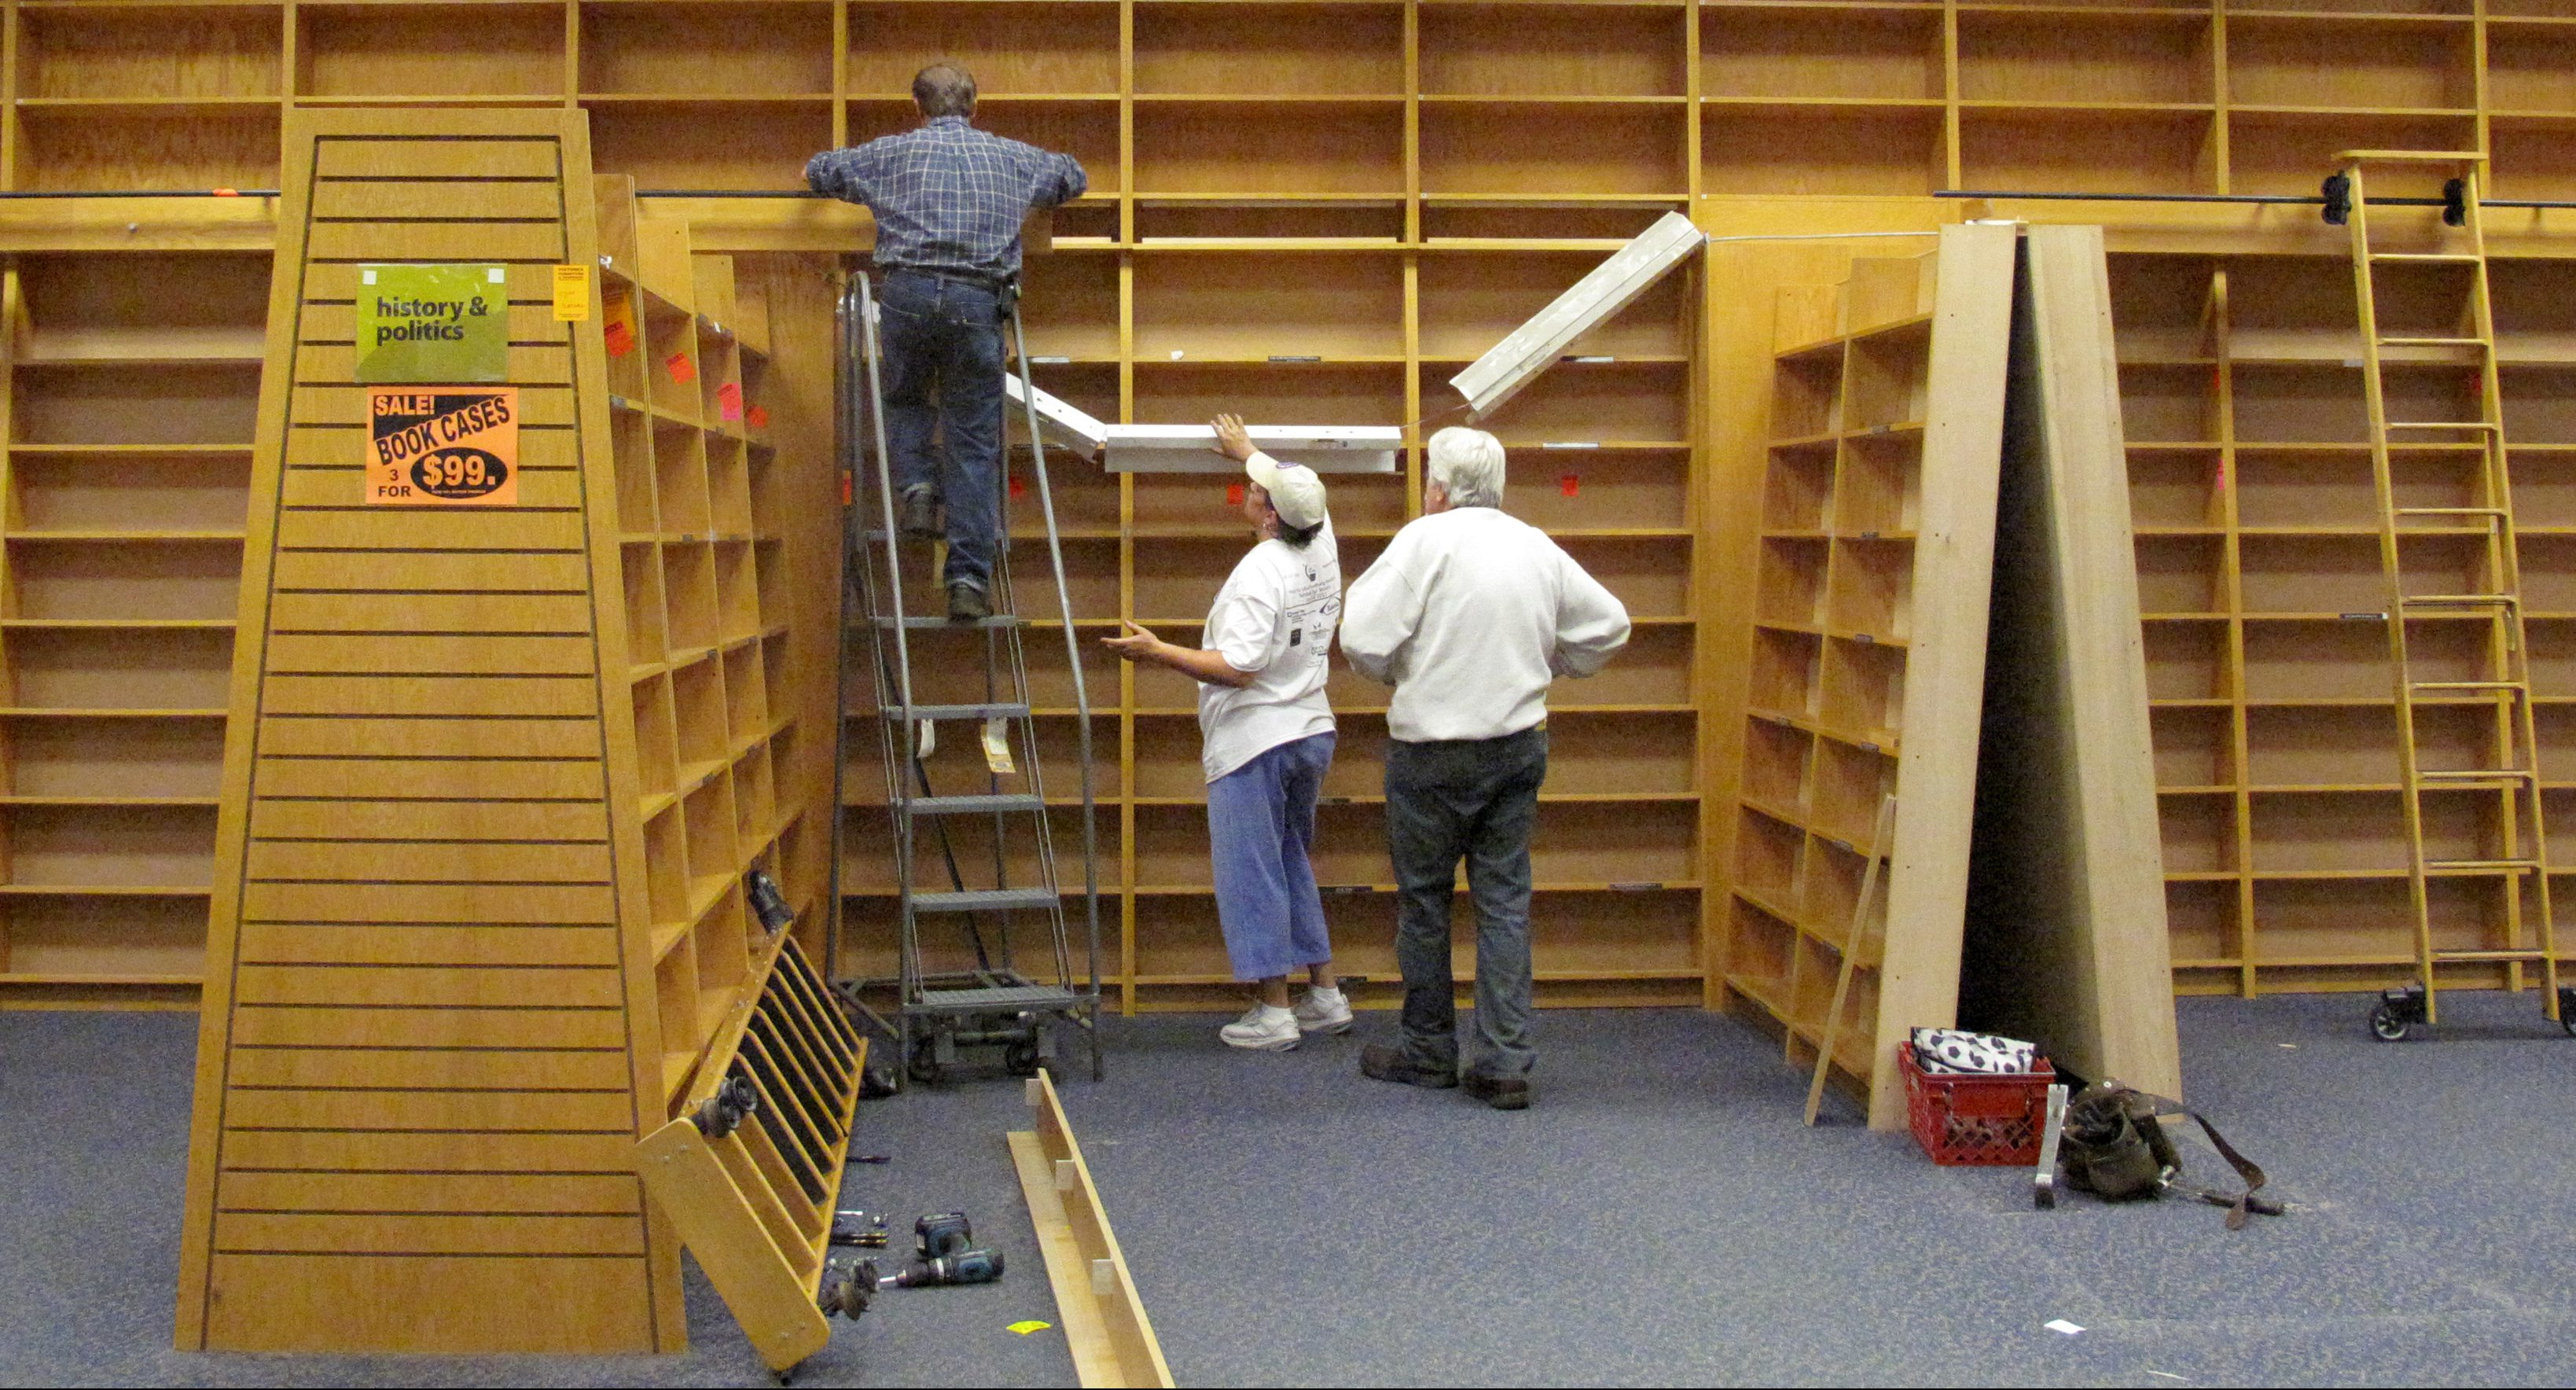 Workers disassemble empty book shelves at the Borders book store in Solon, Ohio on Thursday, Sept. 15, 2022. This Borders store was closing its doors for good on Thursday.  (AP Photo/Amy Sancetta)